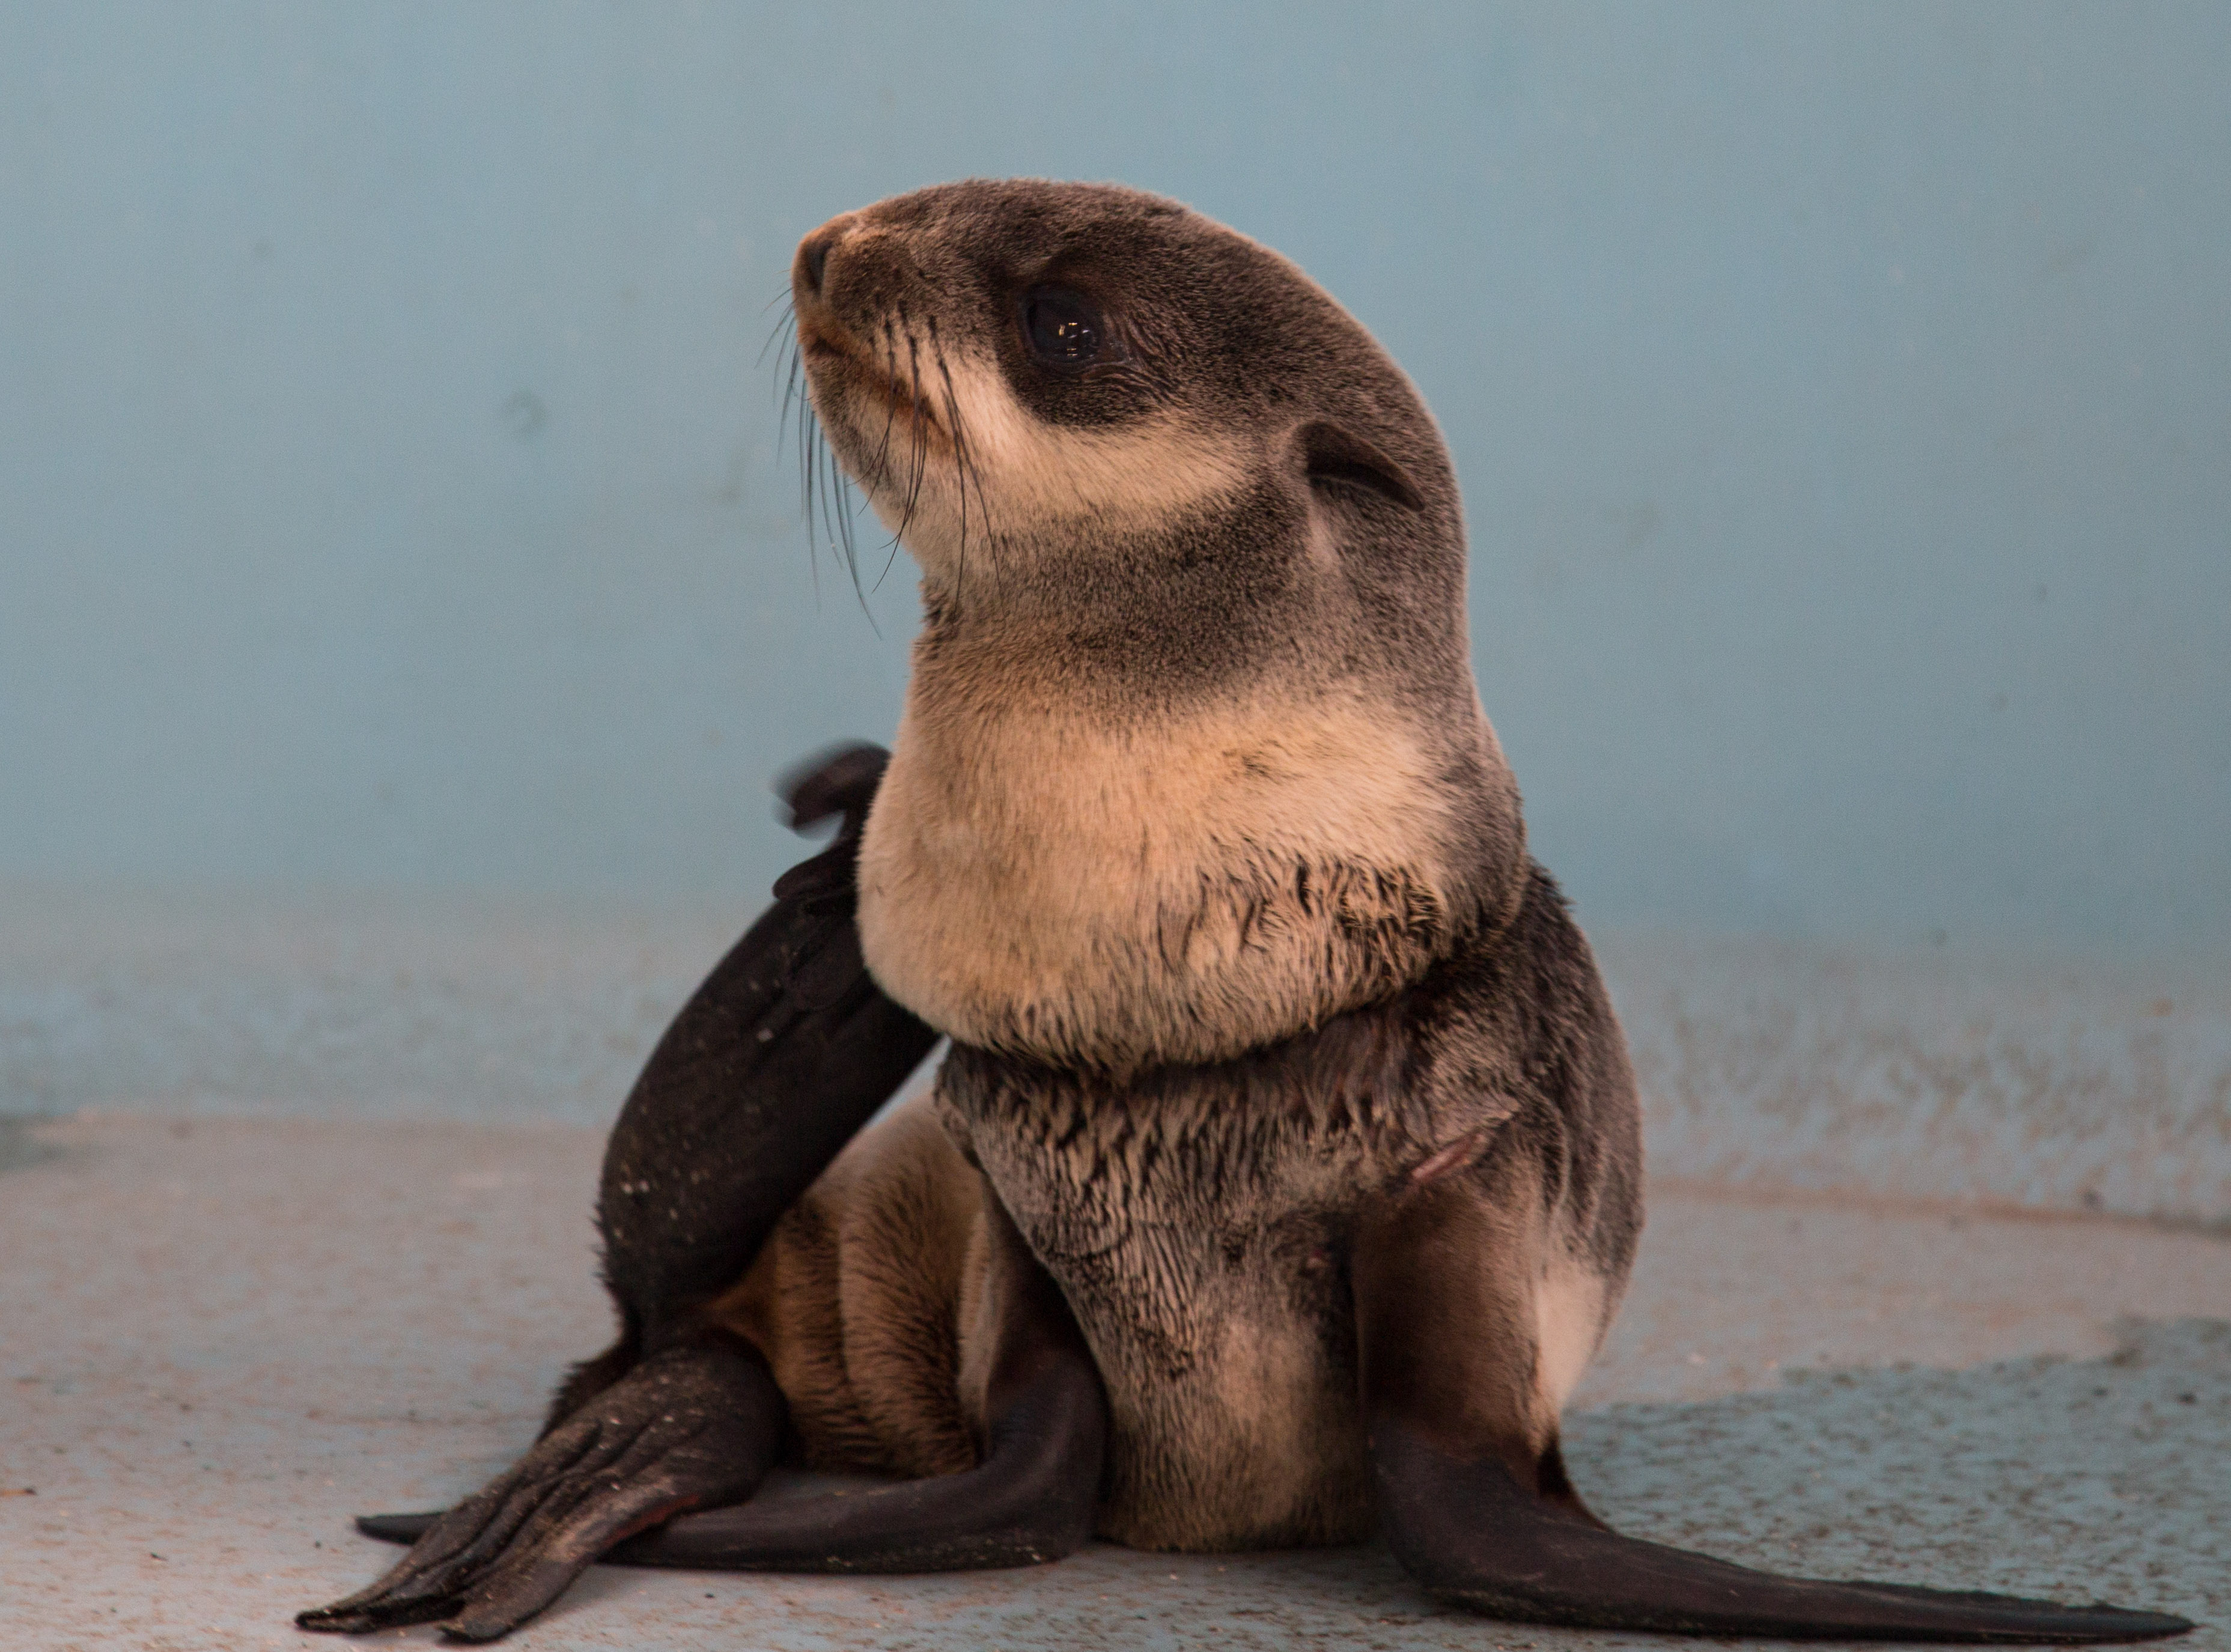 "<p>Jim Burke, Oregon Coast Aquarium Director of Animal Husbandry, said a swift return to the wild is in the animal's best interest.</p><p>""The sooner the pup is released, the better,"" said Burke. ""The animal would not have survived without being dis-entangled. He is stronger today now that we've removed the entanglement and administered multiple courses of antibiotics. The best thing is to get the pup back in the water where it can hunt for food. Luckily, the wound appears superficial.""</p>"